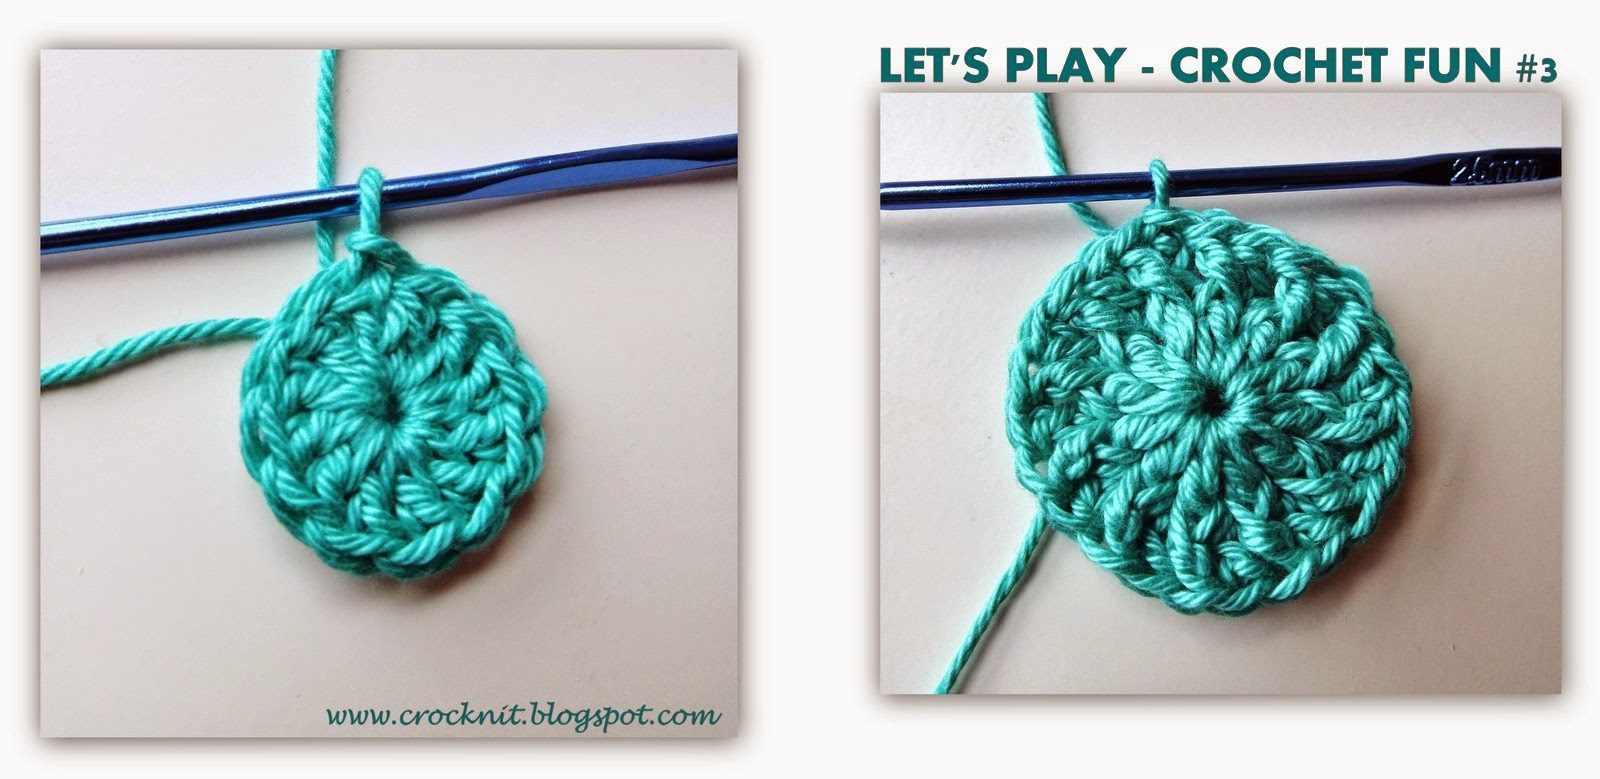 Crochet Stitch Rtrf : MICROCKNIT CREATIONS: LETS PLAY - CROCHET FUN - FREE PATTERN #3